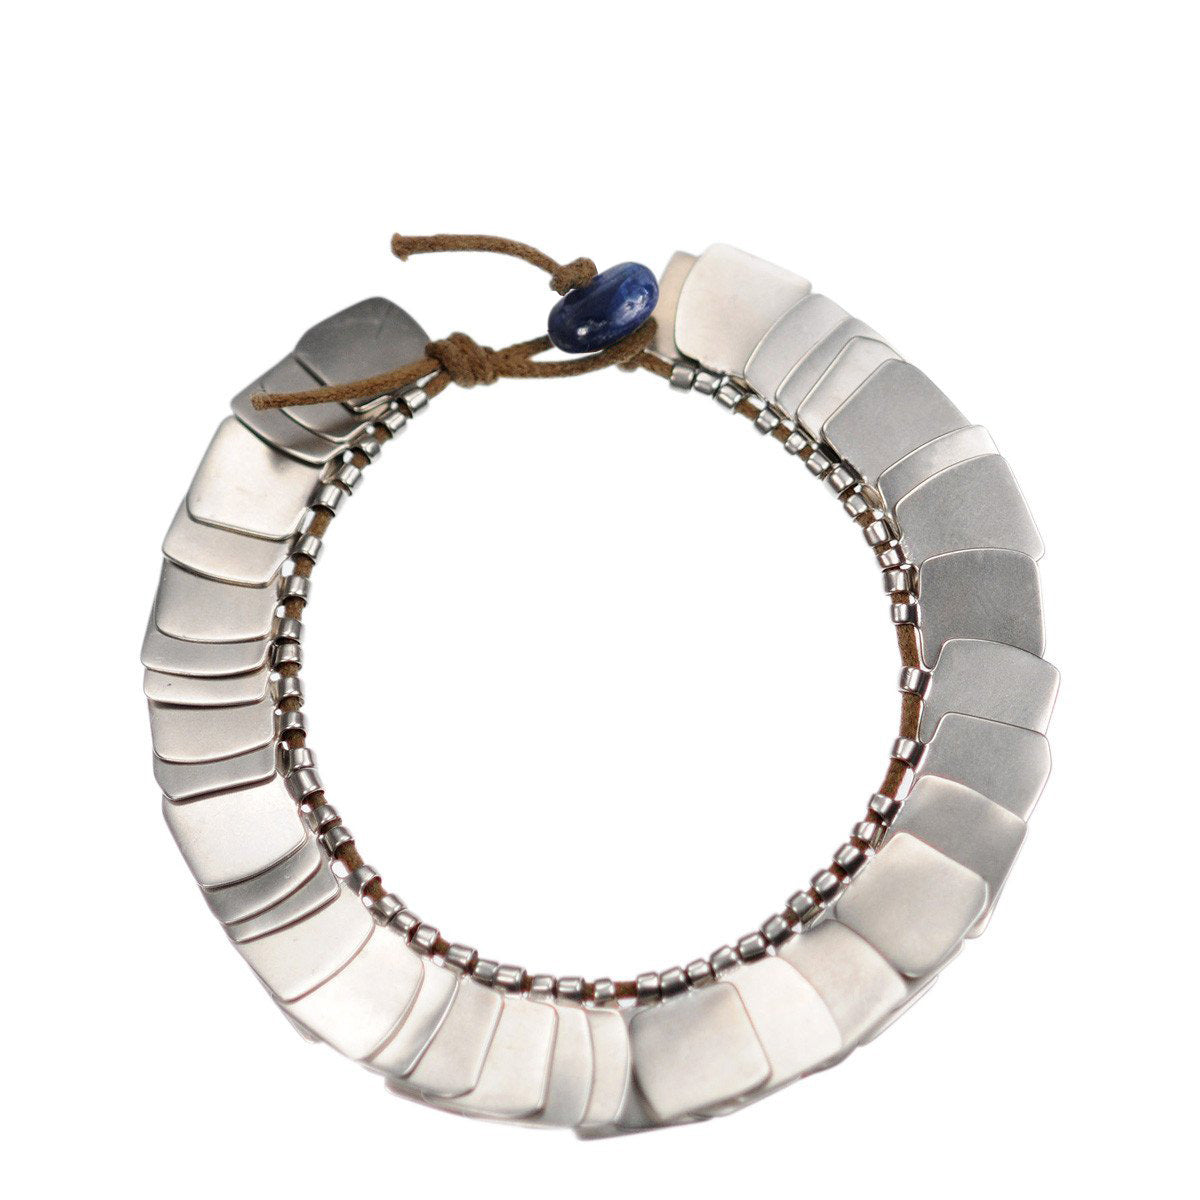 Sterling Silver Full Flattened Metal Bracelet on Cord with Sapphire Bead Closure